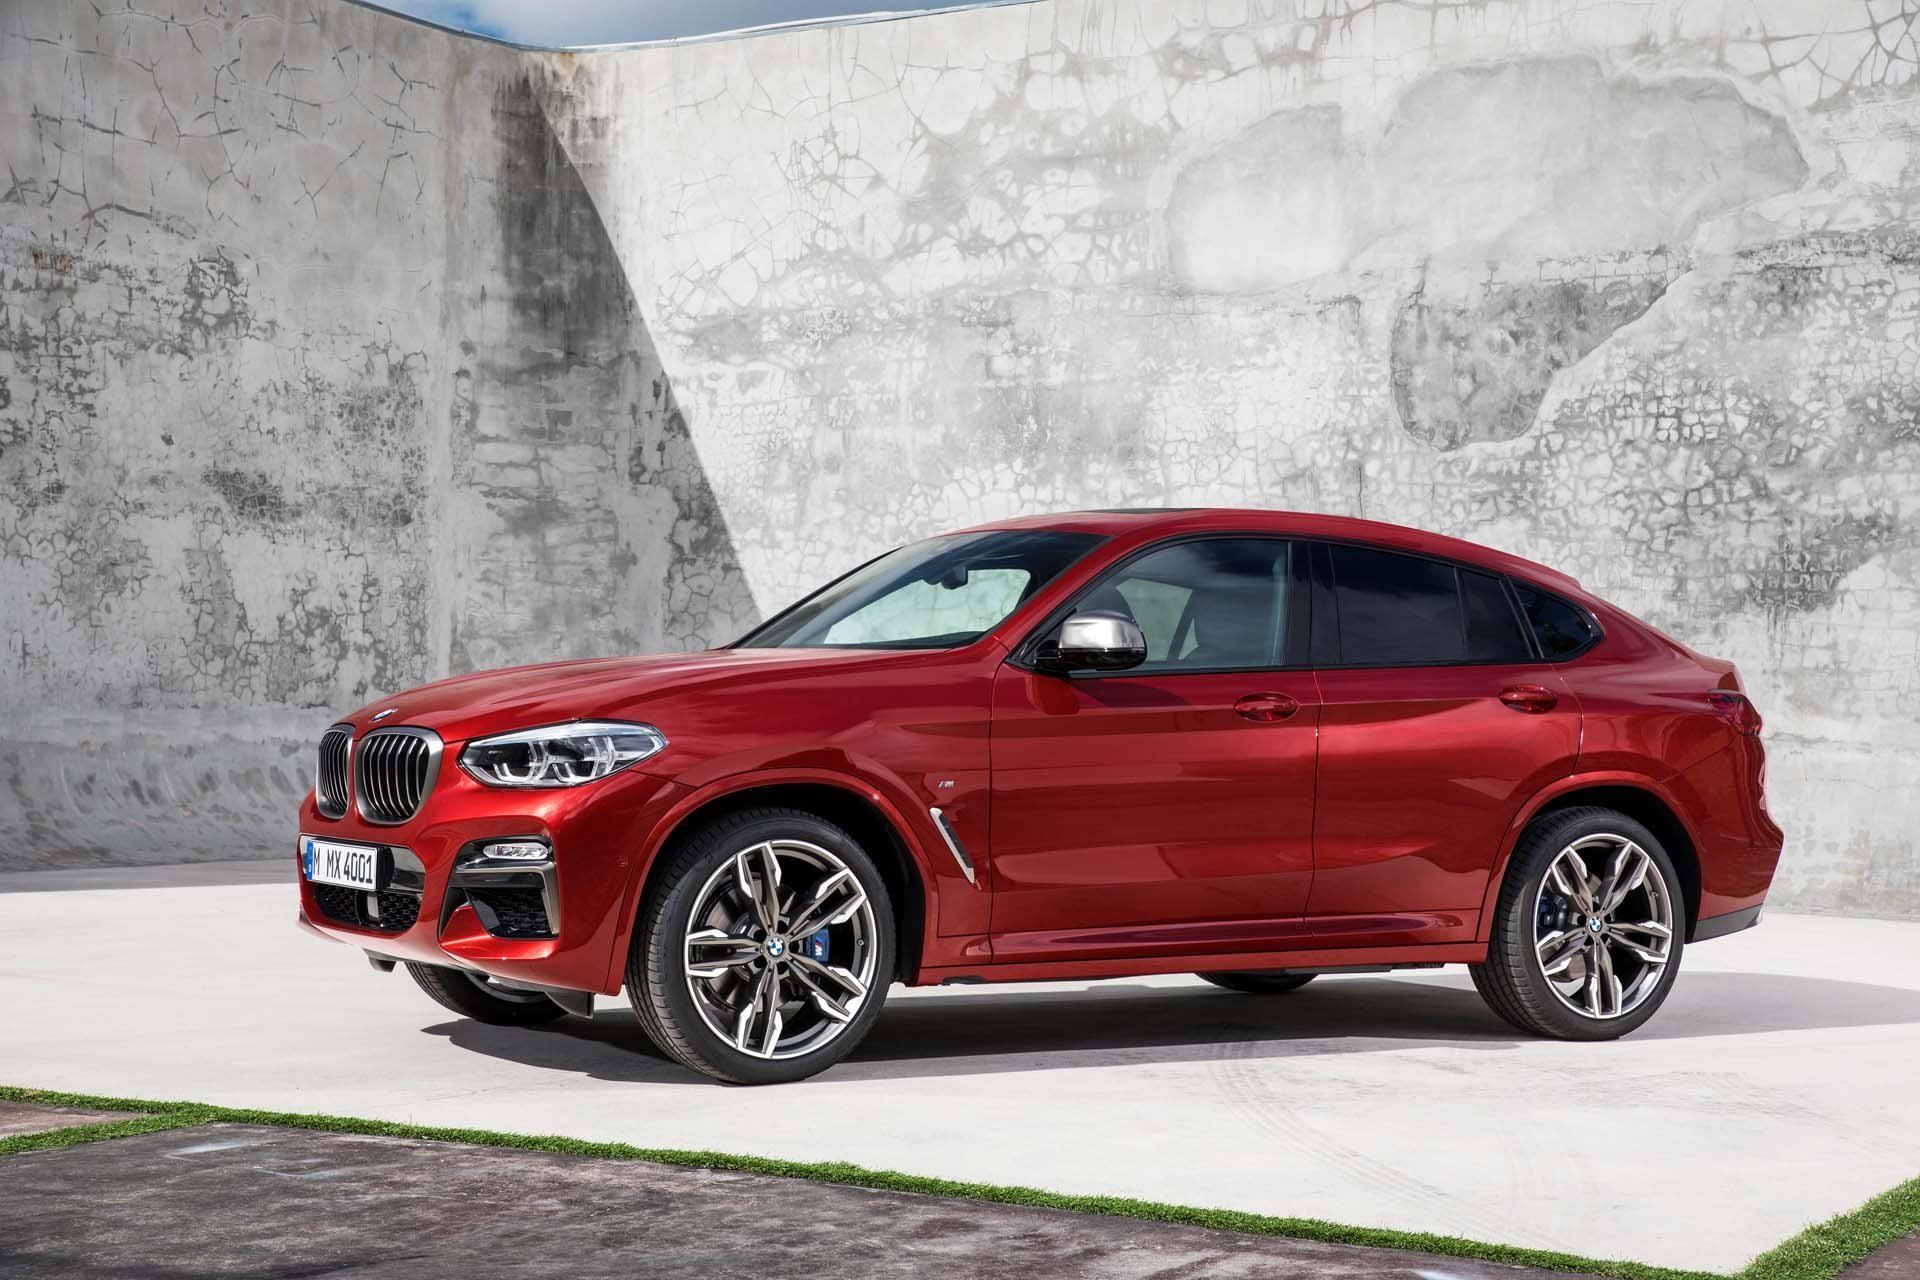 Latest 2019 Bmw X4 2019 Mercedes Amg G63 Ares Mulsanne Coupe Free Download